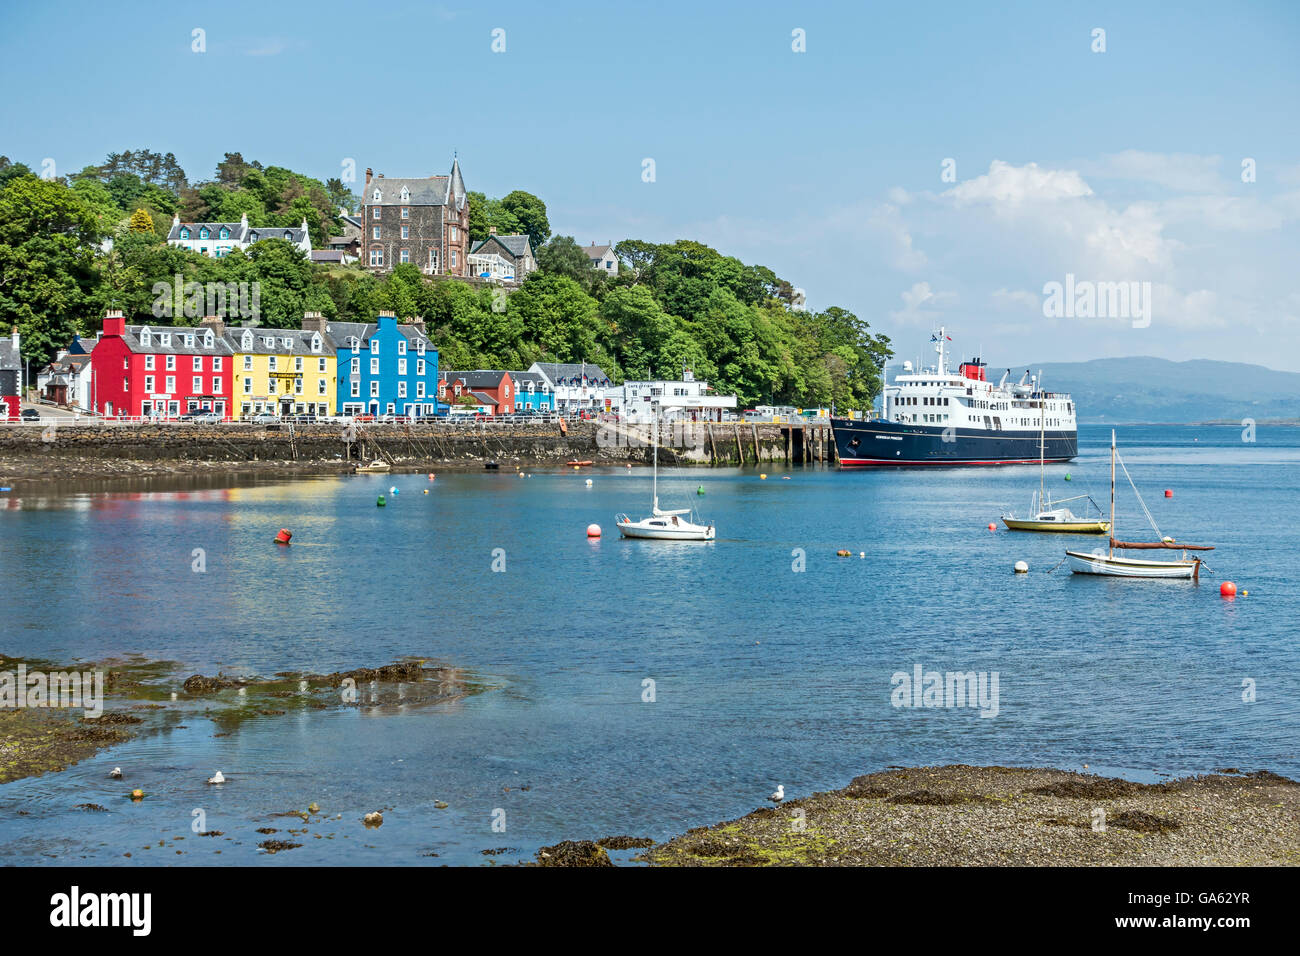 Cruise ship Hebridean Princes moored at the pier in Tobermory Isle of Mull Scotland - Stock Image